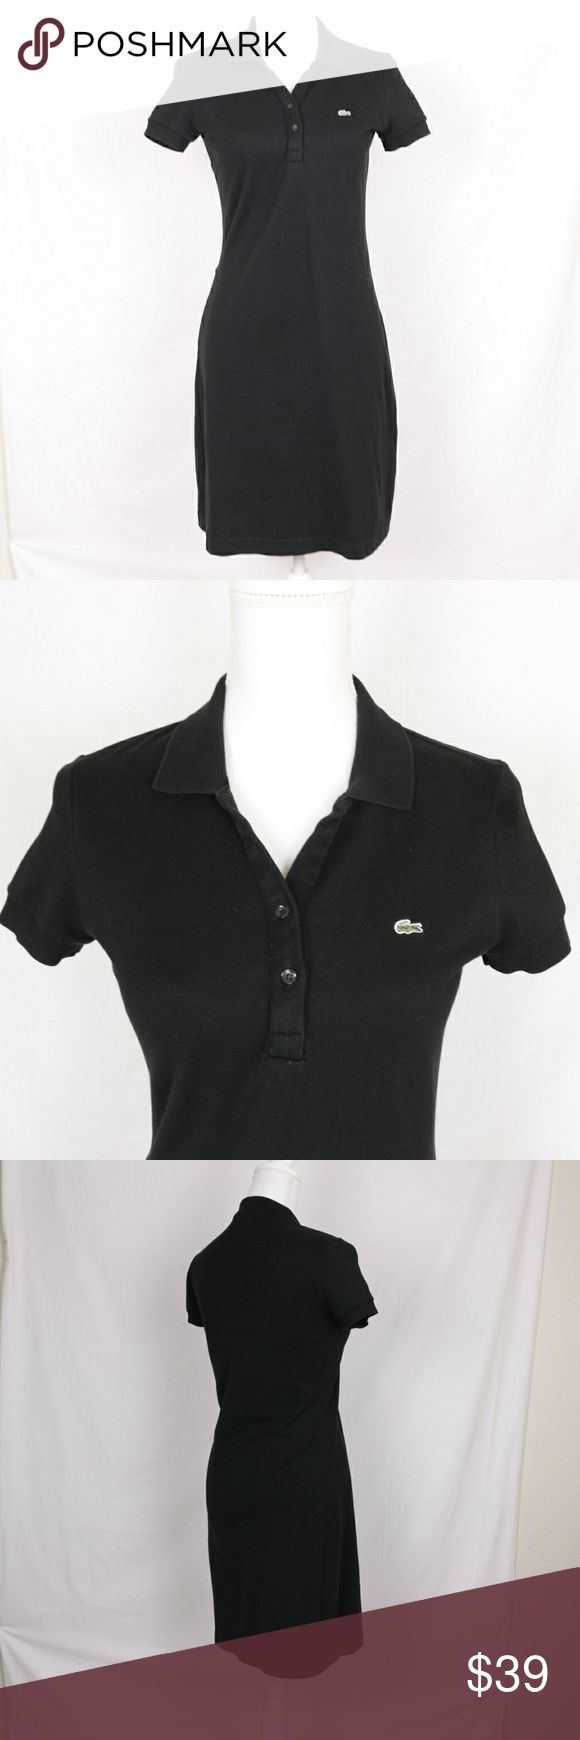 Lacoste Black Pique Polo Dress Short Sleeve 38 Women's Polo dress by Lacoste featuring a button up collar and the alligator logo at chest. The material has some stretch. Marker on inner label. Excellent pre-owned condition.   Size 38 (equal to US Size 6) Lacoste Dresses